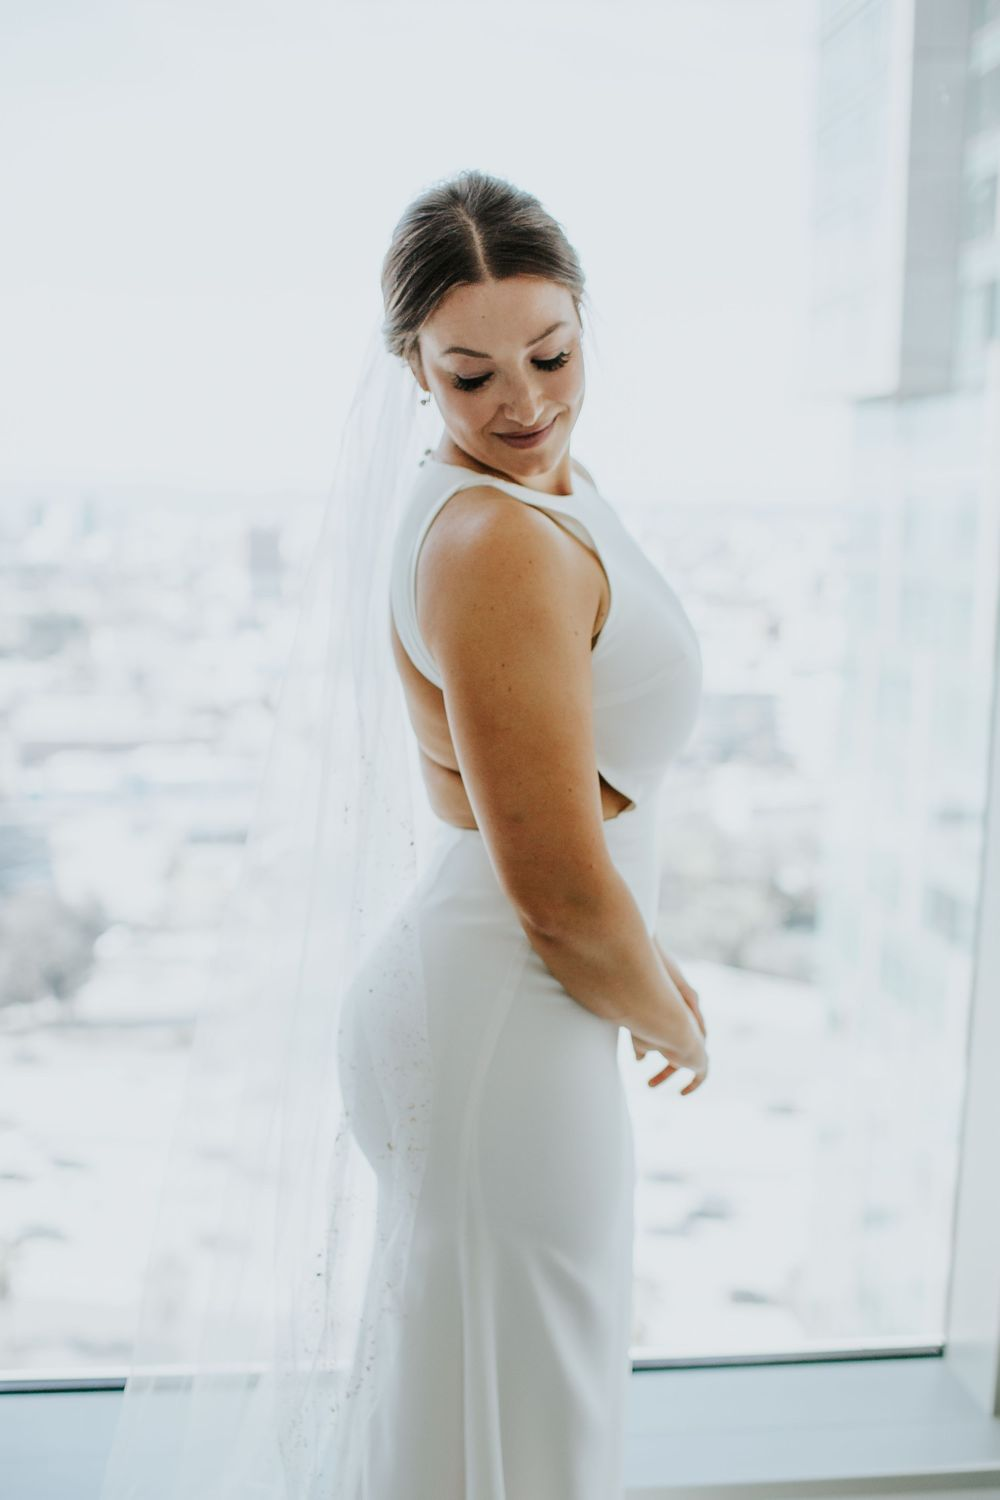 associate photographer photo of bride getting ready and admiring her dress